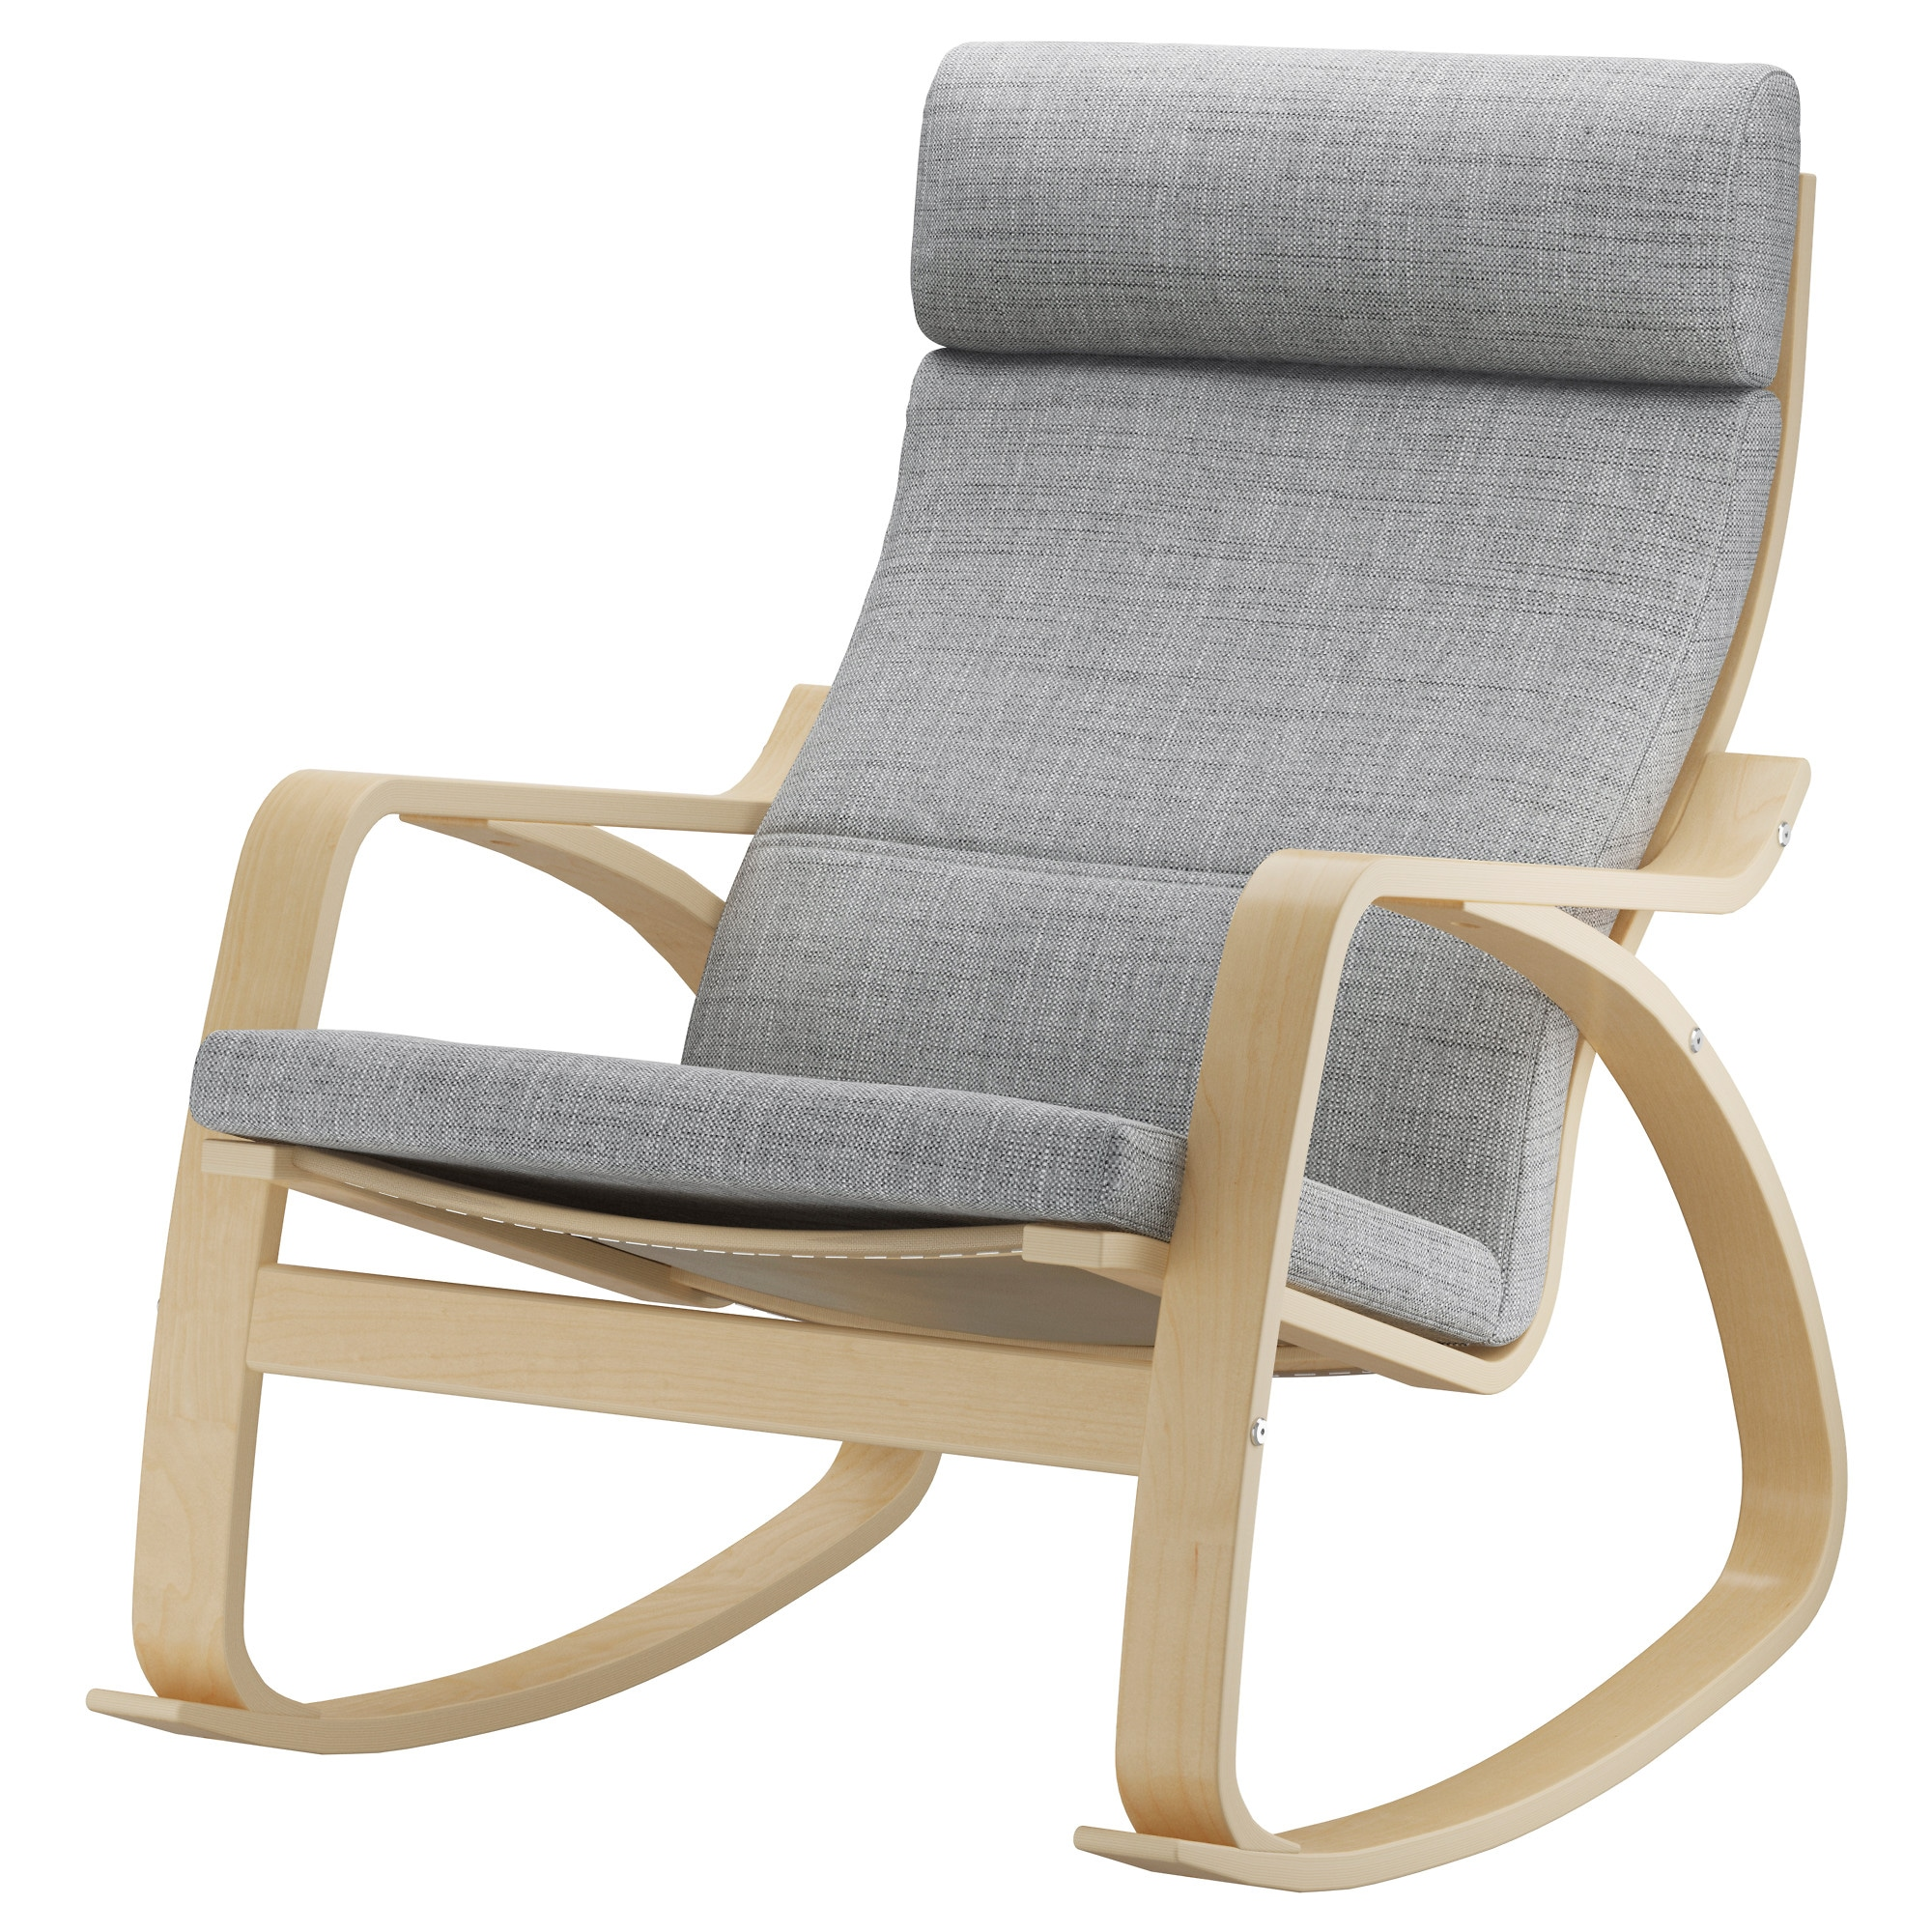 Ikea lillberg rocking chair -